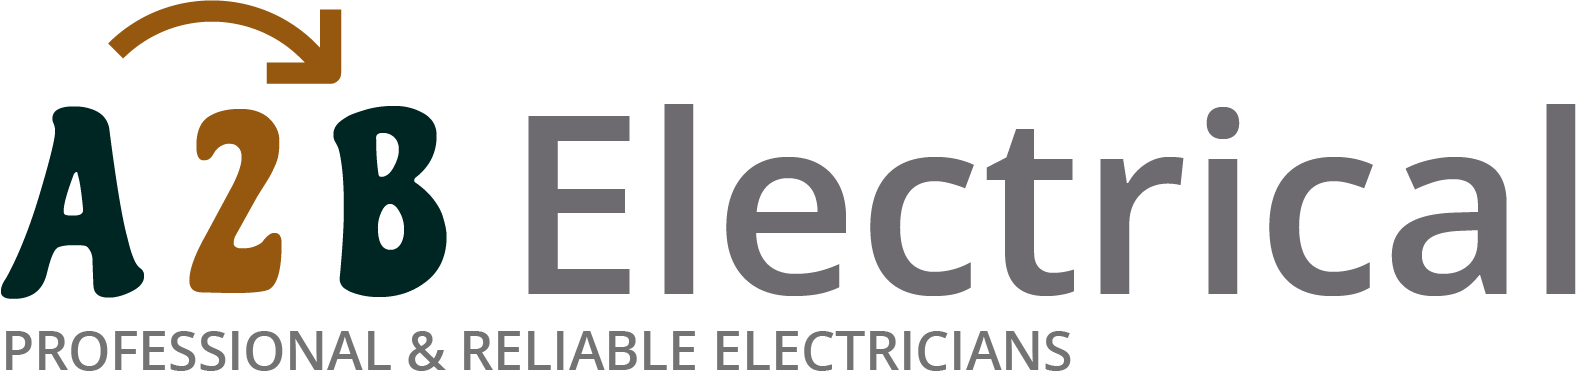 If you have electrical wiring problems in Winchmore Hill, we can provide an electrician to have a look for you.